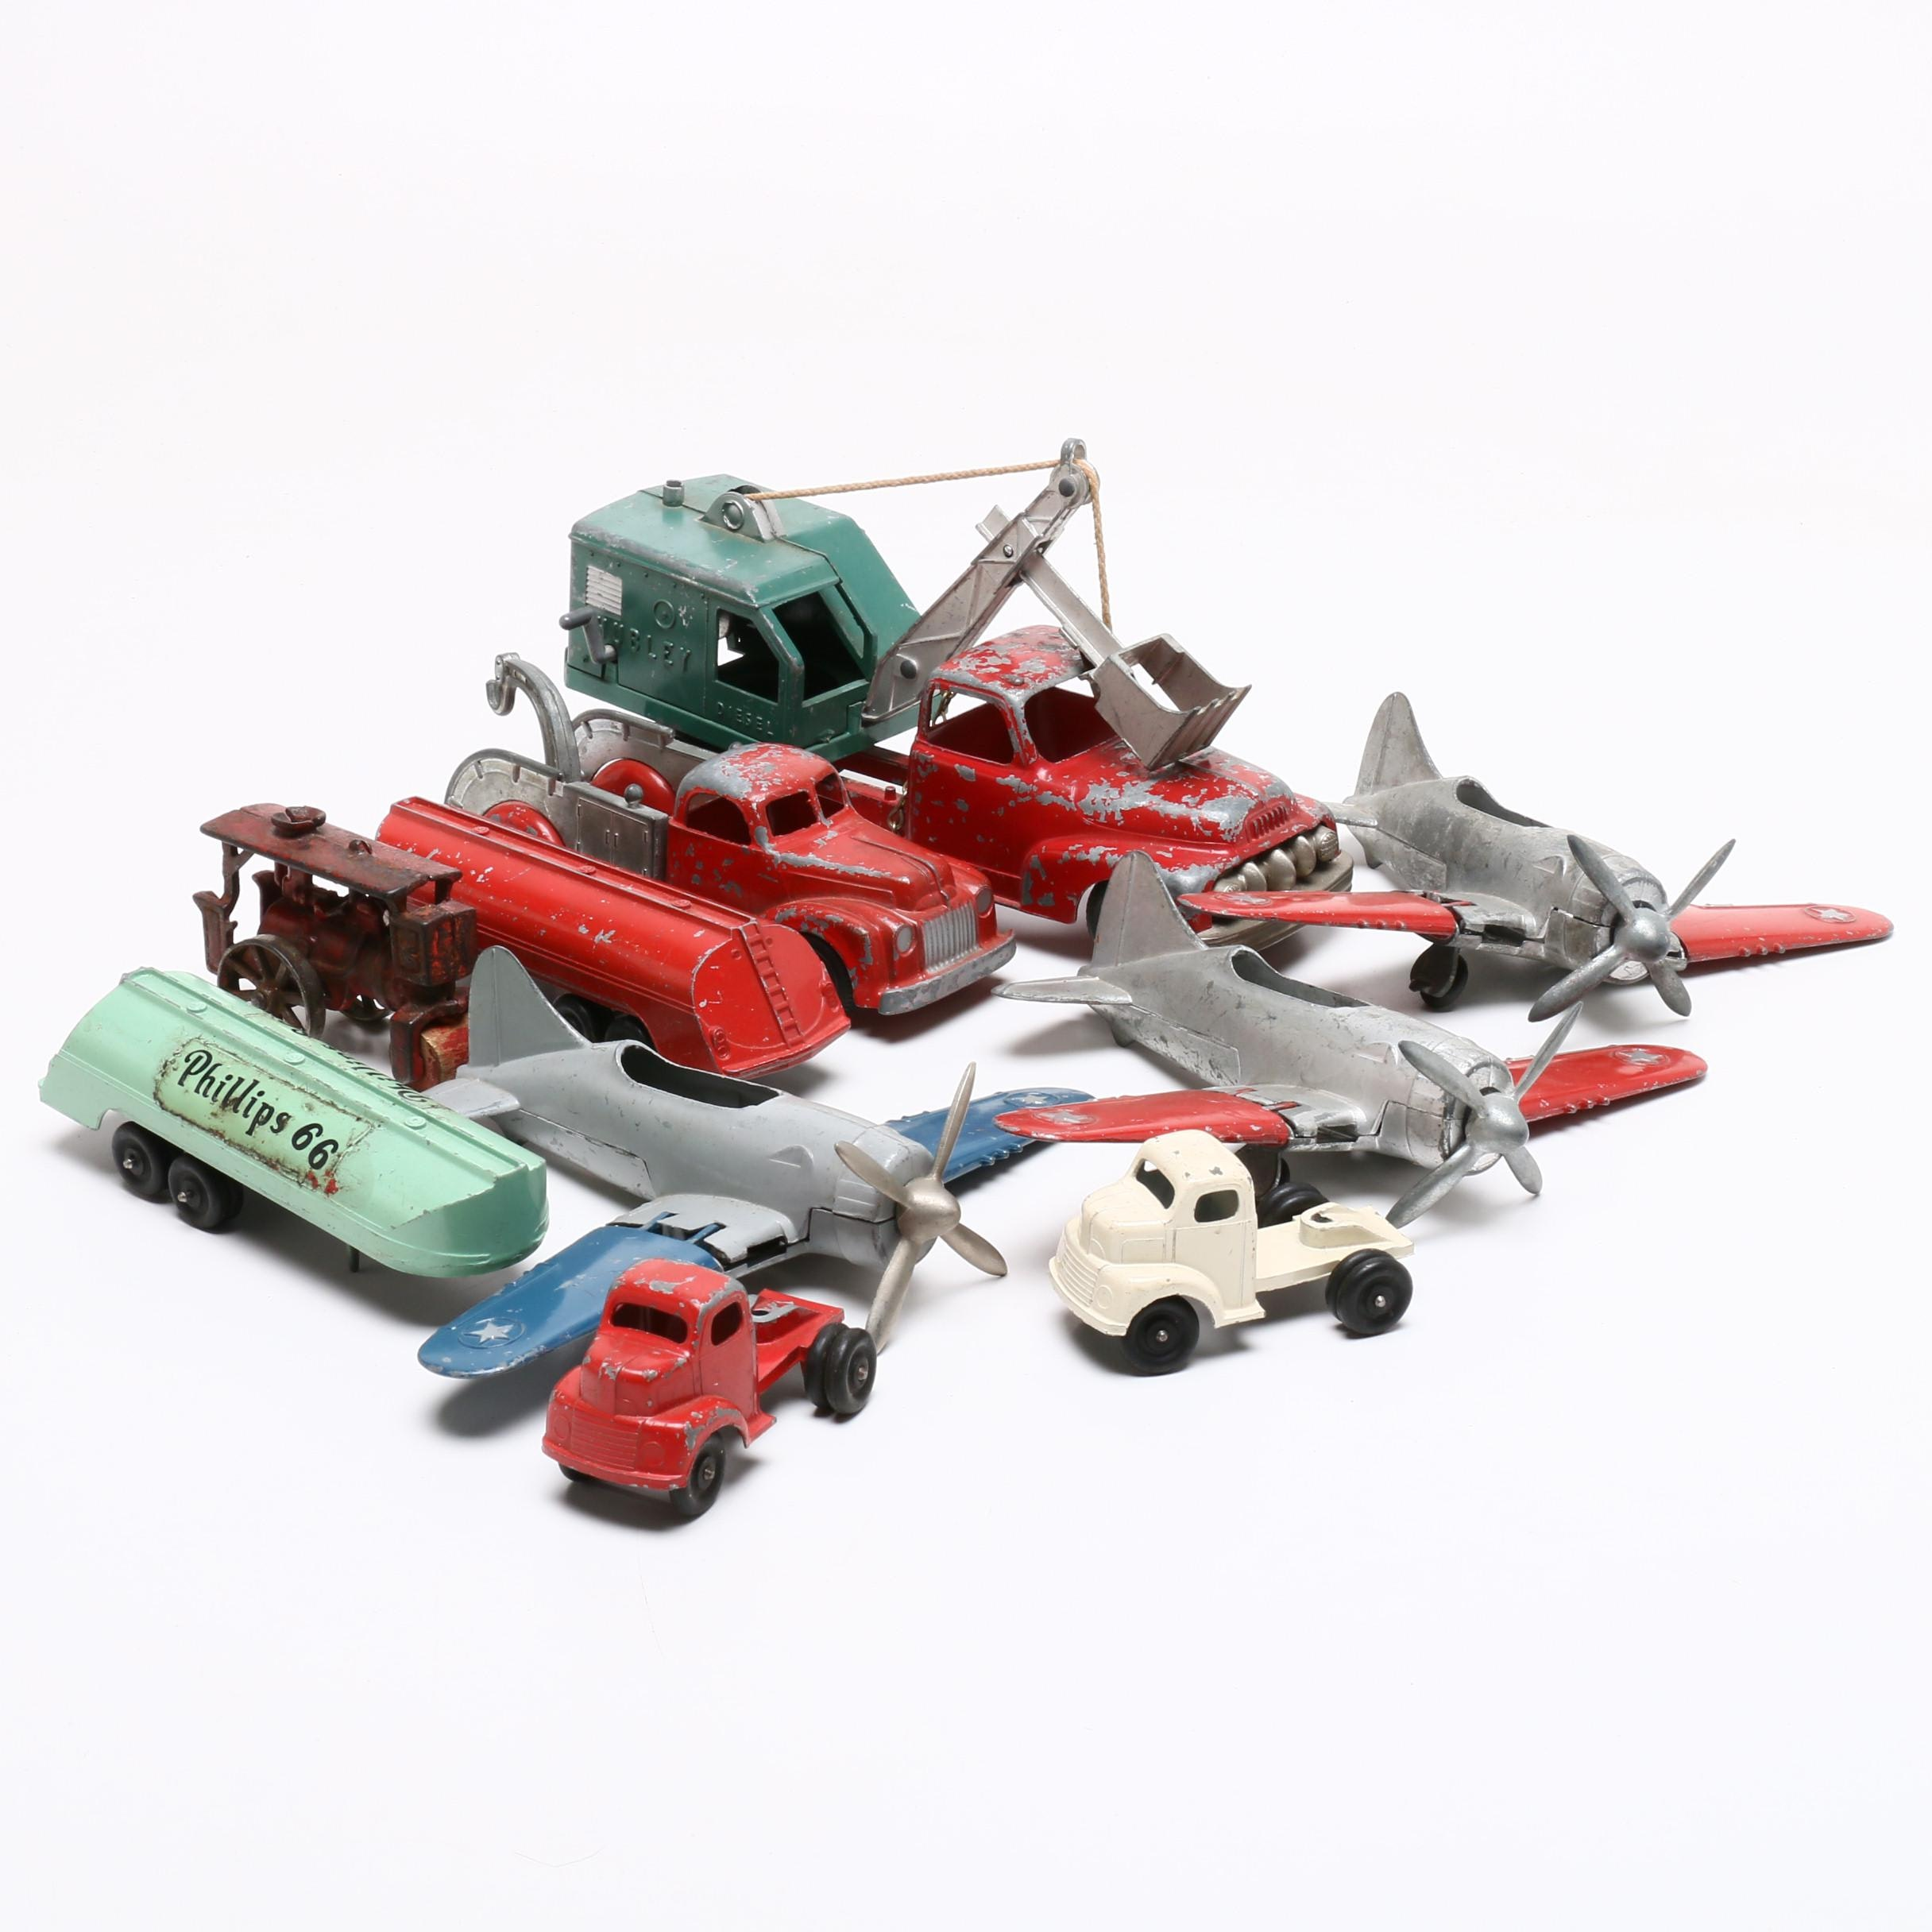 Die-Cast Trucks, Planes, and Construction Vehicles Including Hubley, Circa 1950s